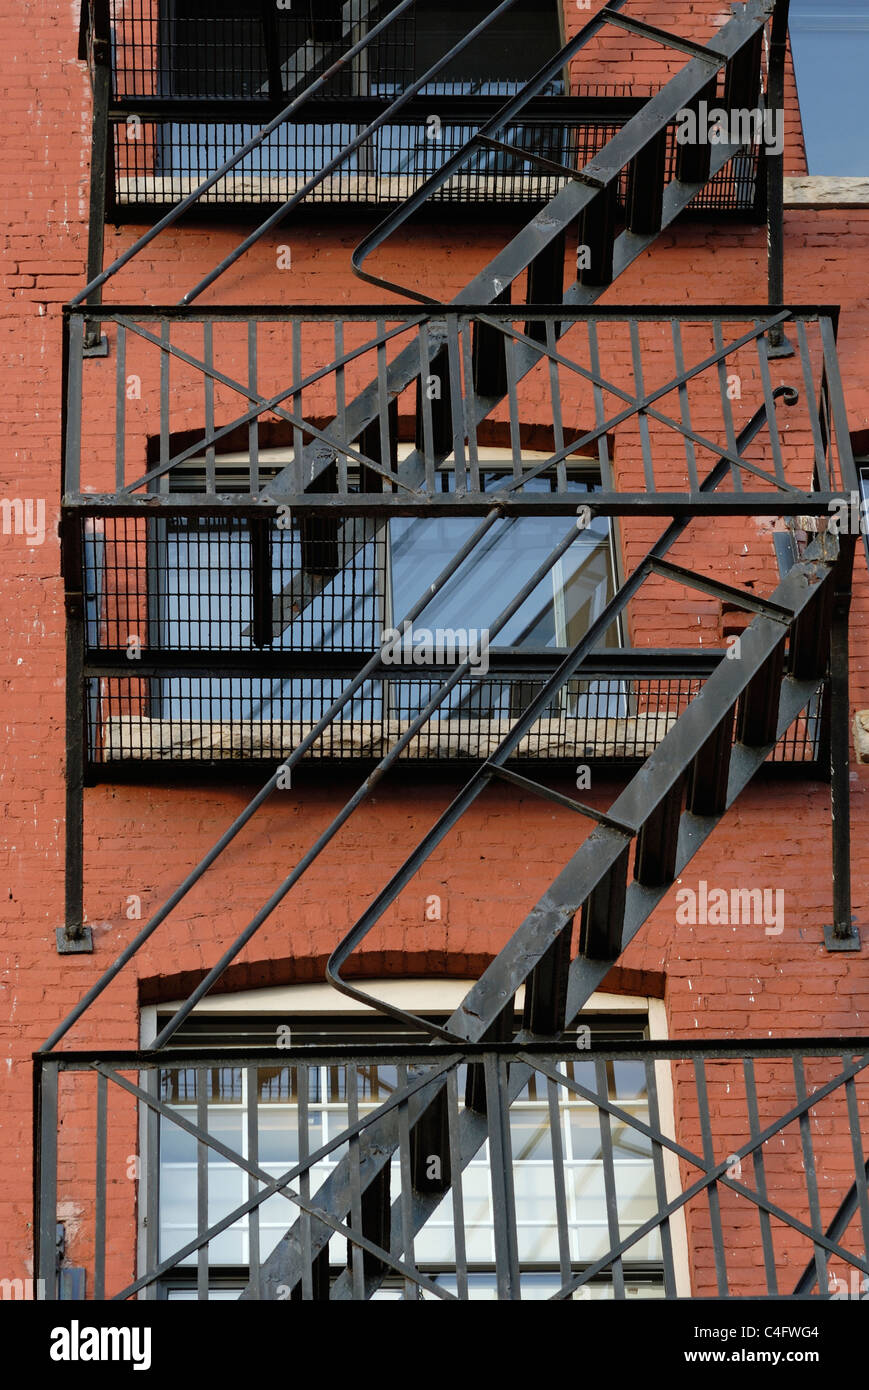 Close Up Of Metal Fire Escape Attached To A Old Red Brick Building